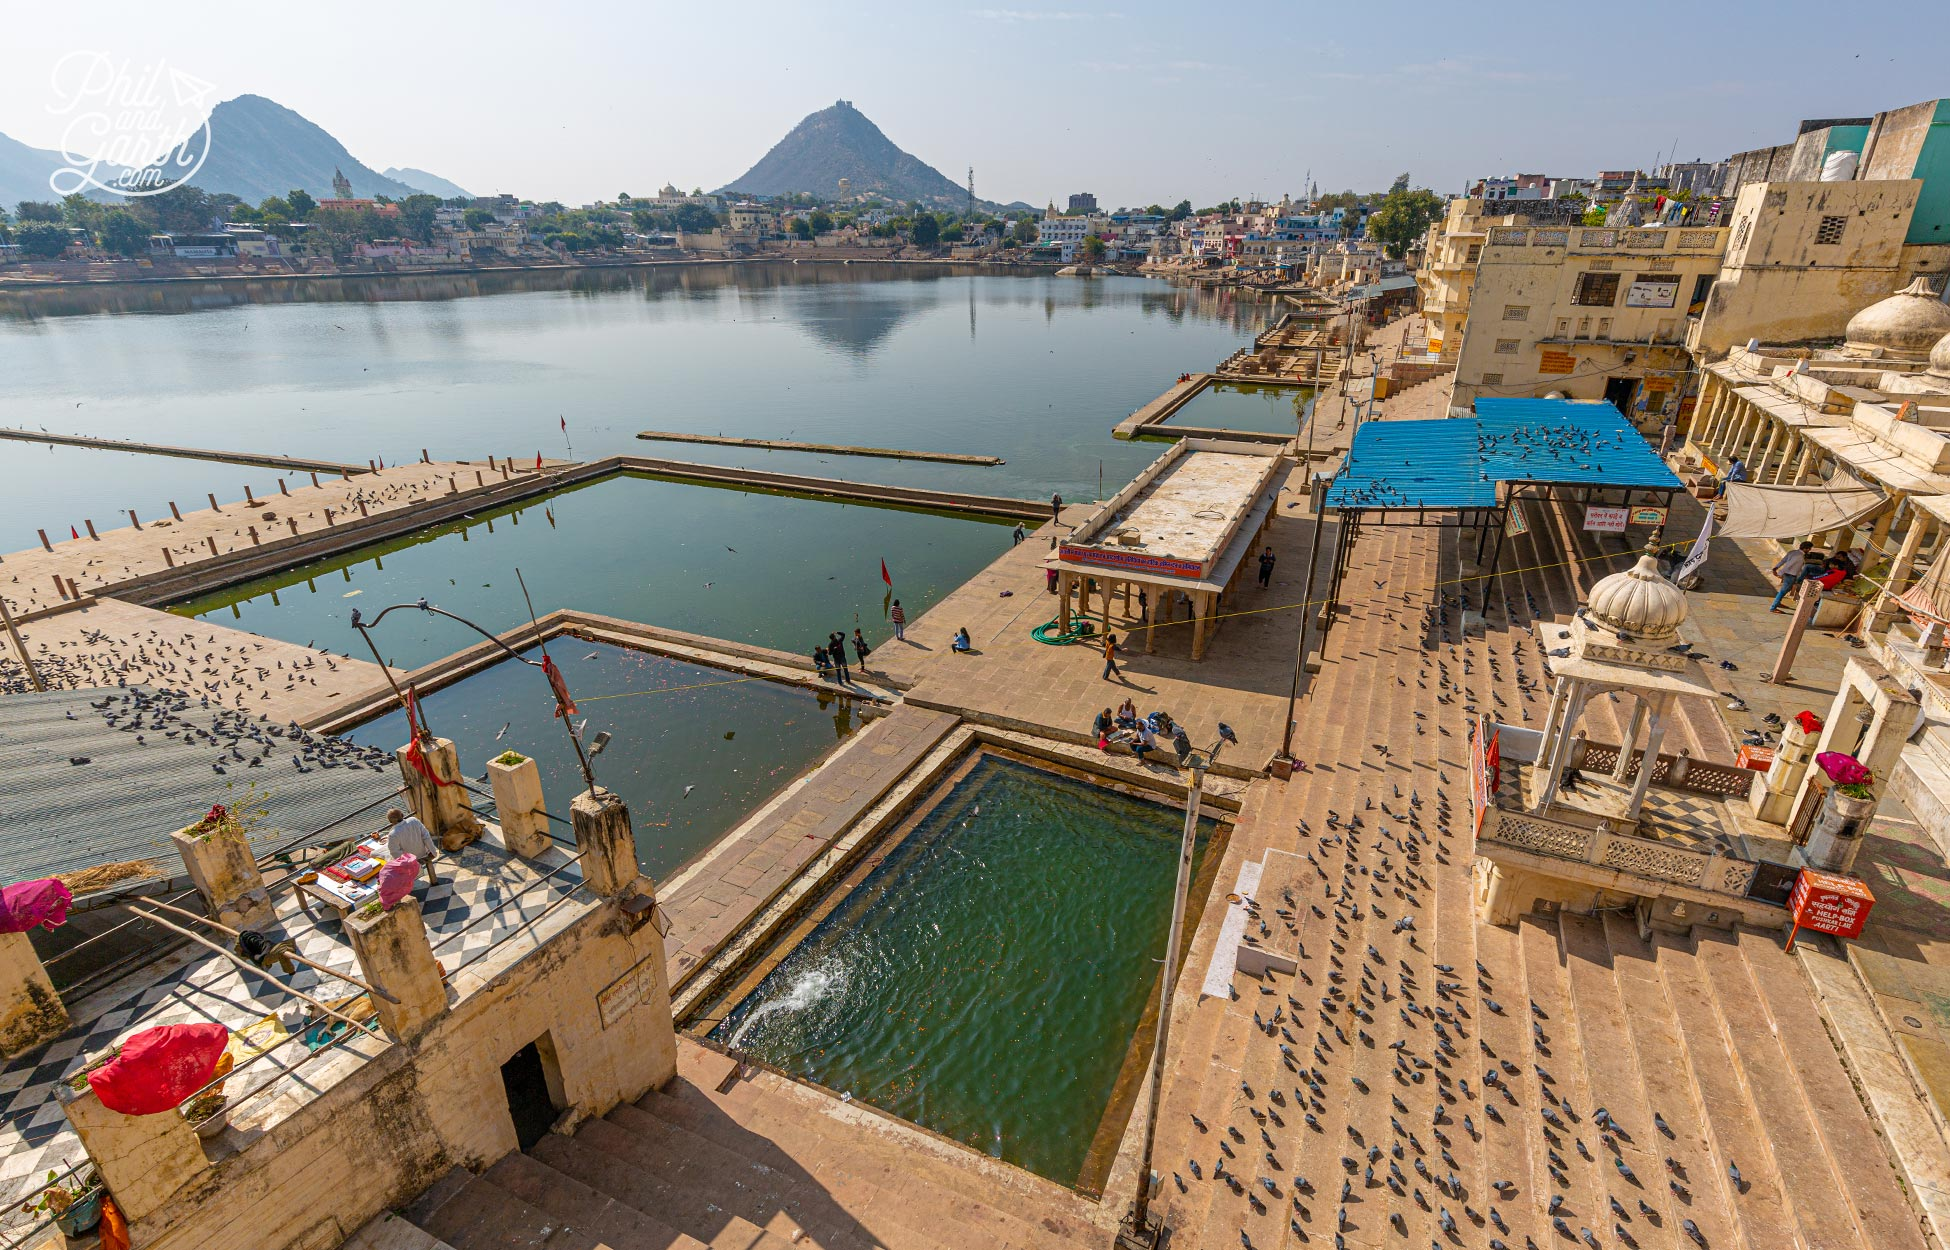 Places to visit in Pushkar, India. Lake Pushkar is considered to be sacred by Hindus